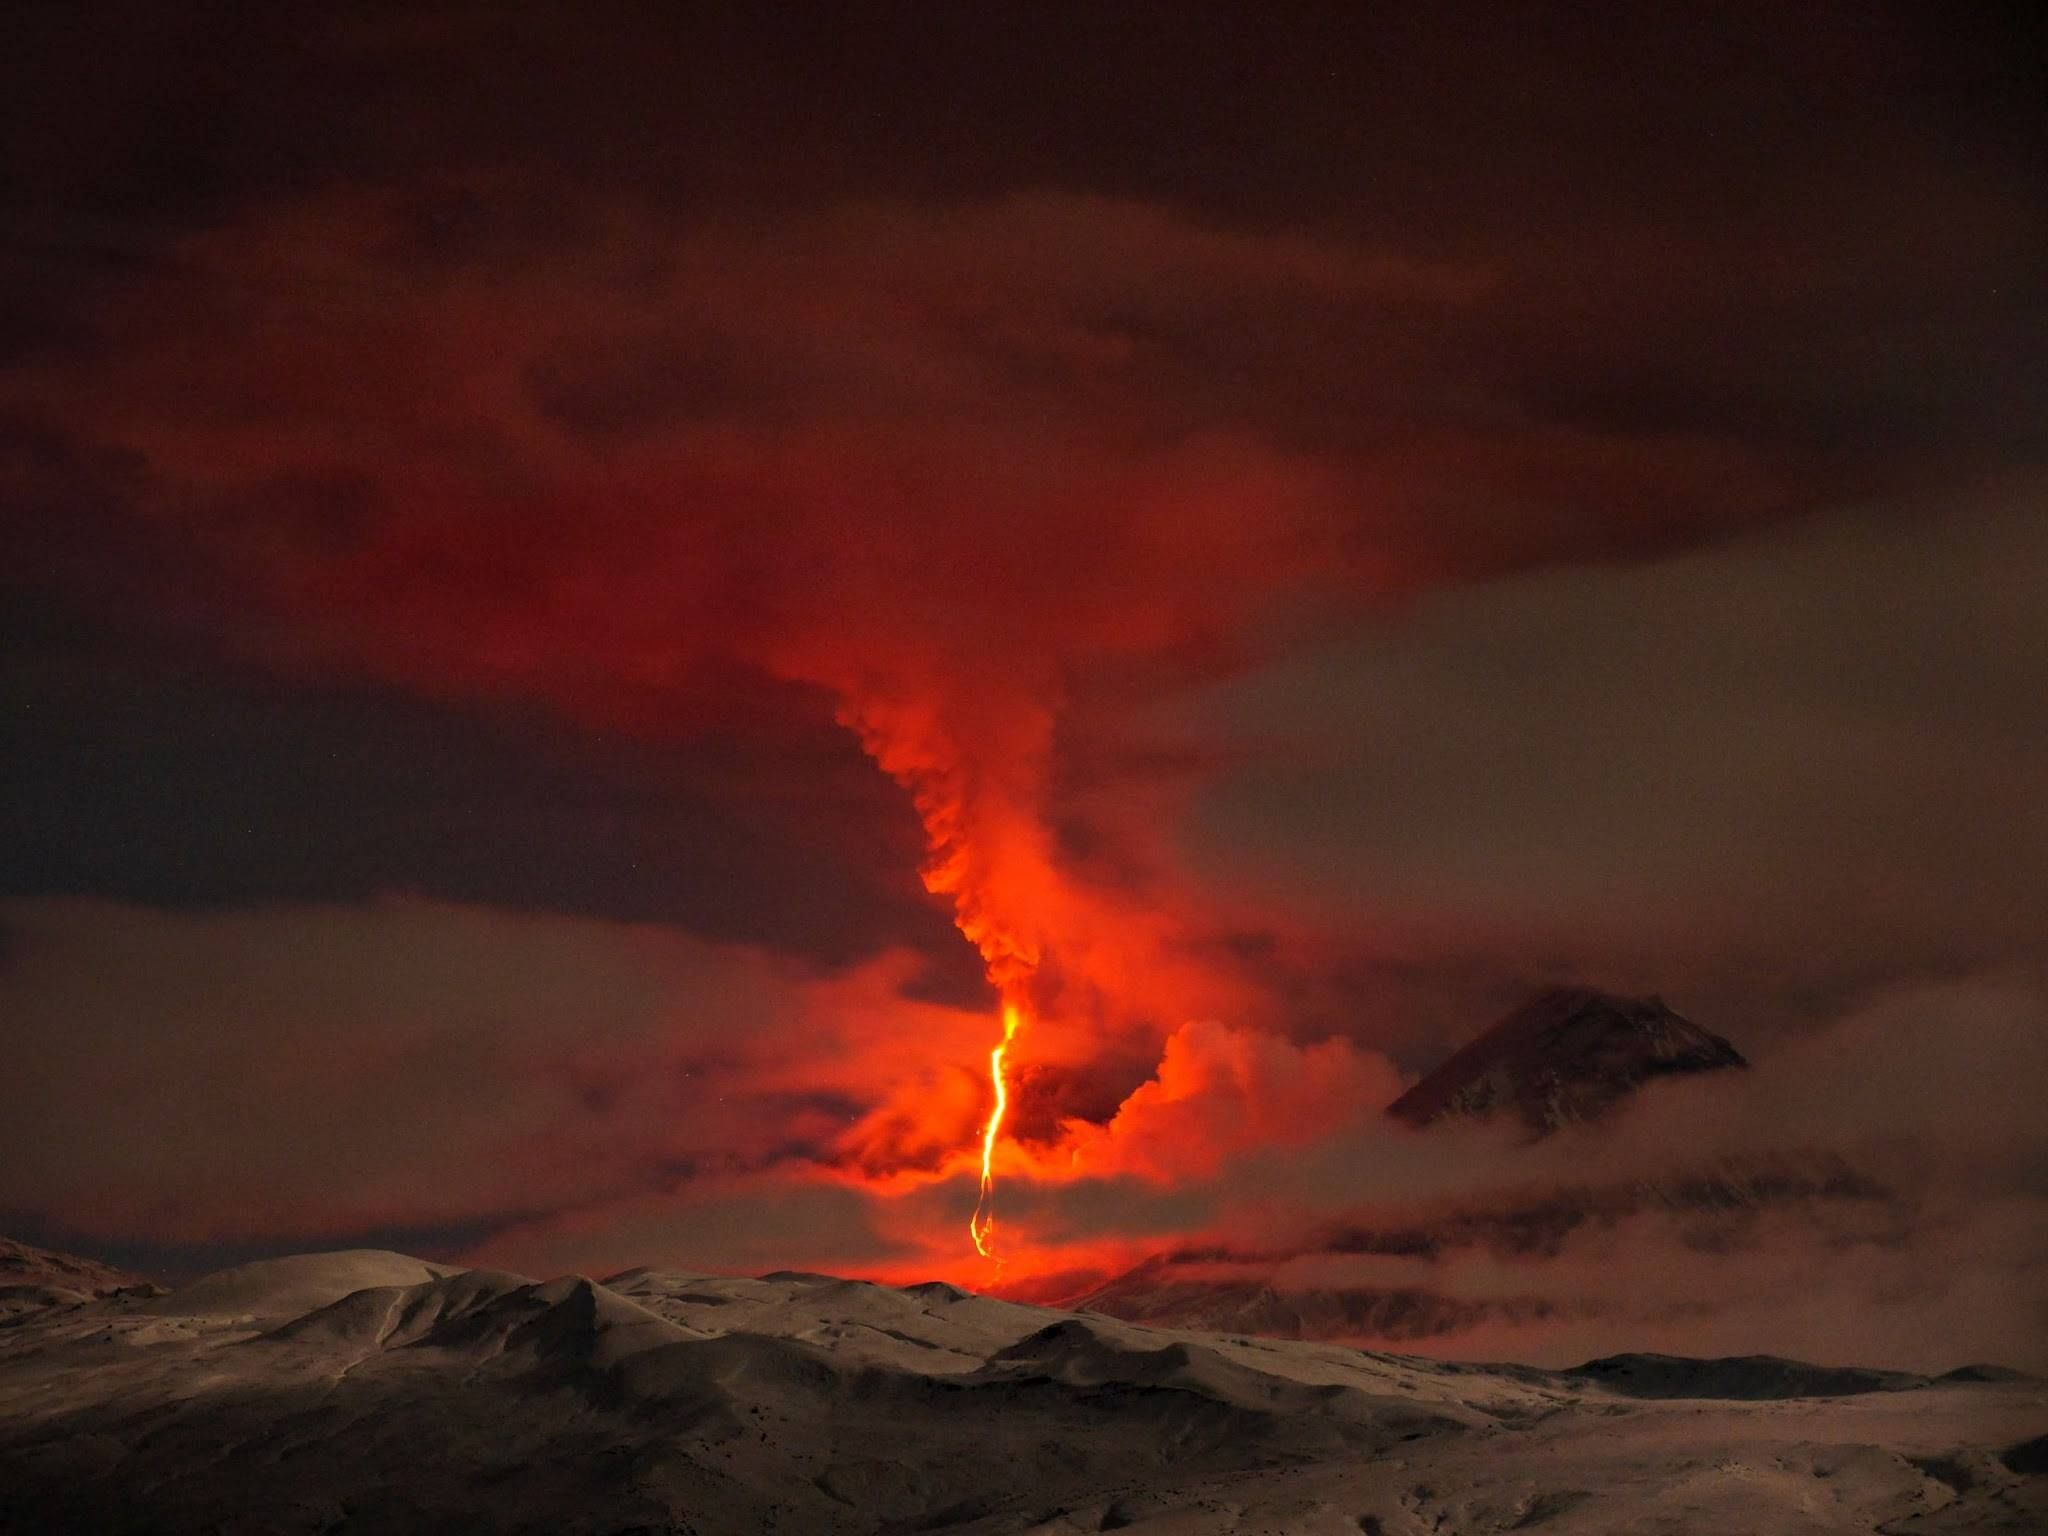 Volcanic Eruption In Russia Kamikaze Blue Jay Places Spaces - 14 amazing volcanic eruptions pictured space